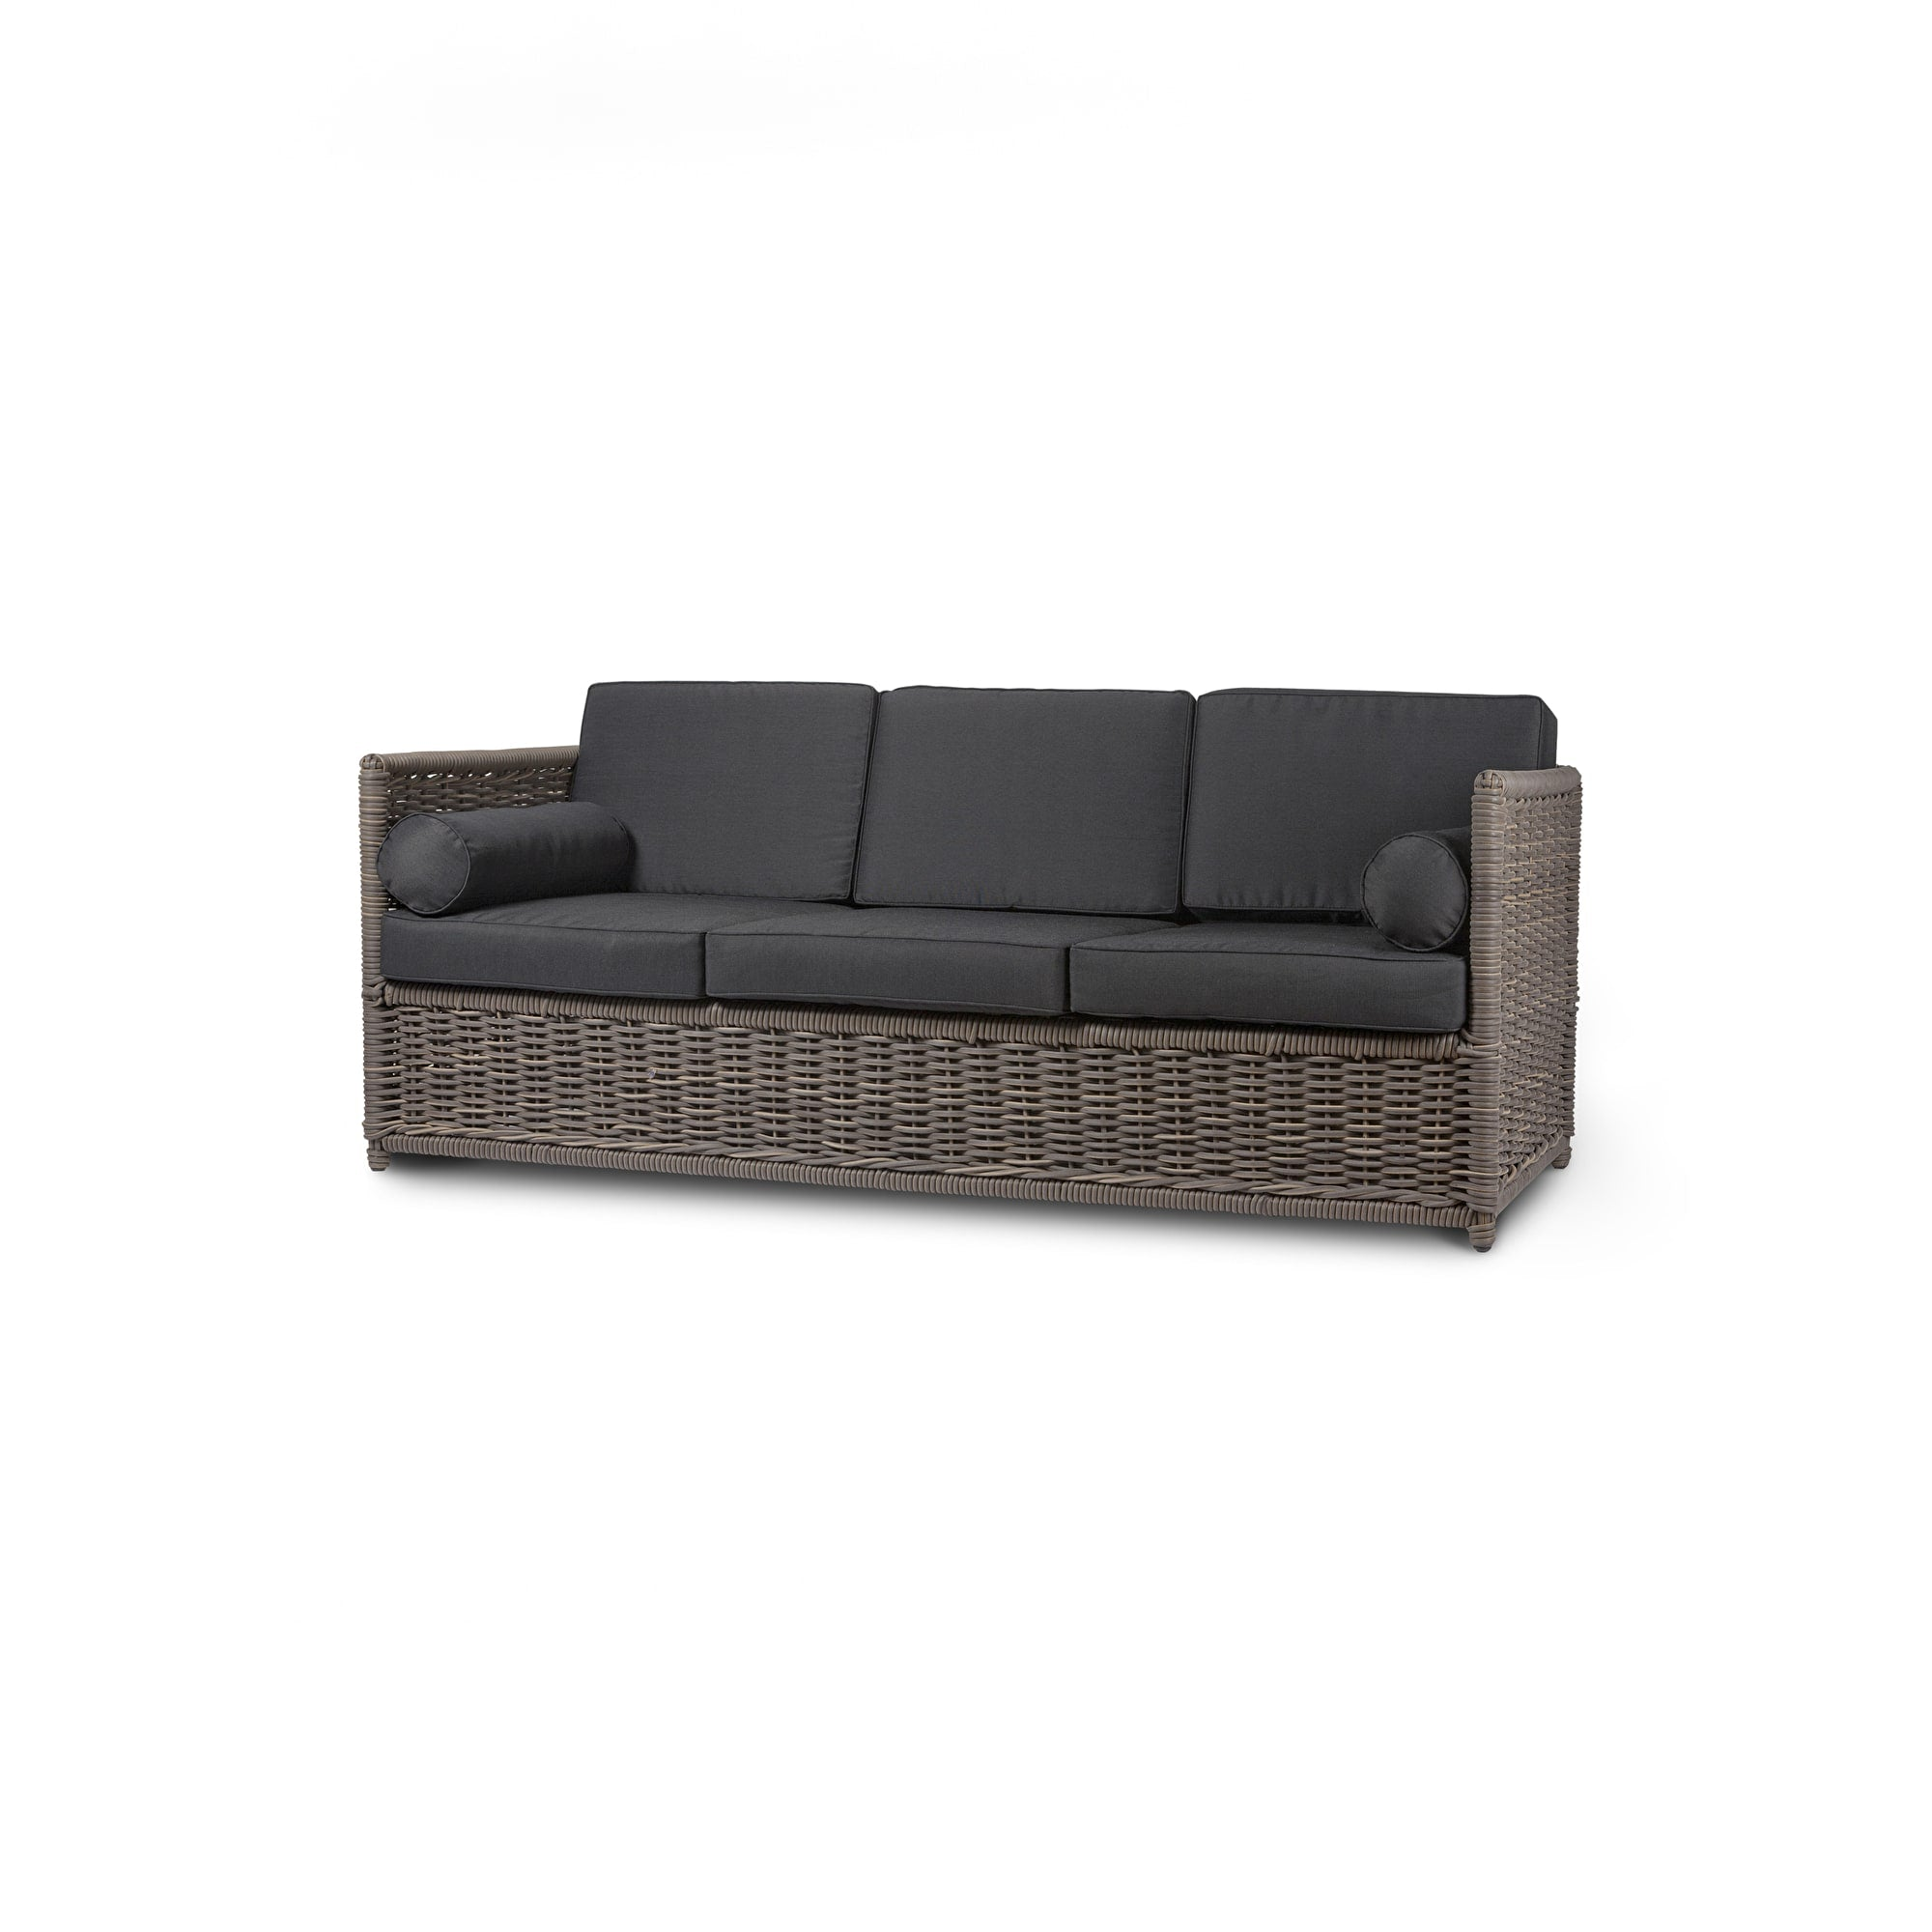 Magnificent Sofas Youll Love Ezzo Co Uk 2 Pdpeps Interior Chair Design Pdpepsorg